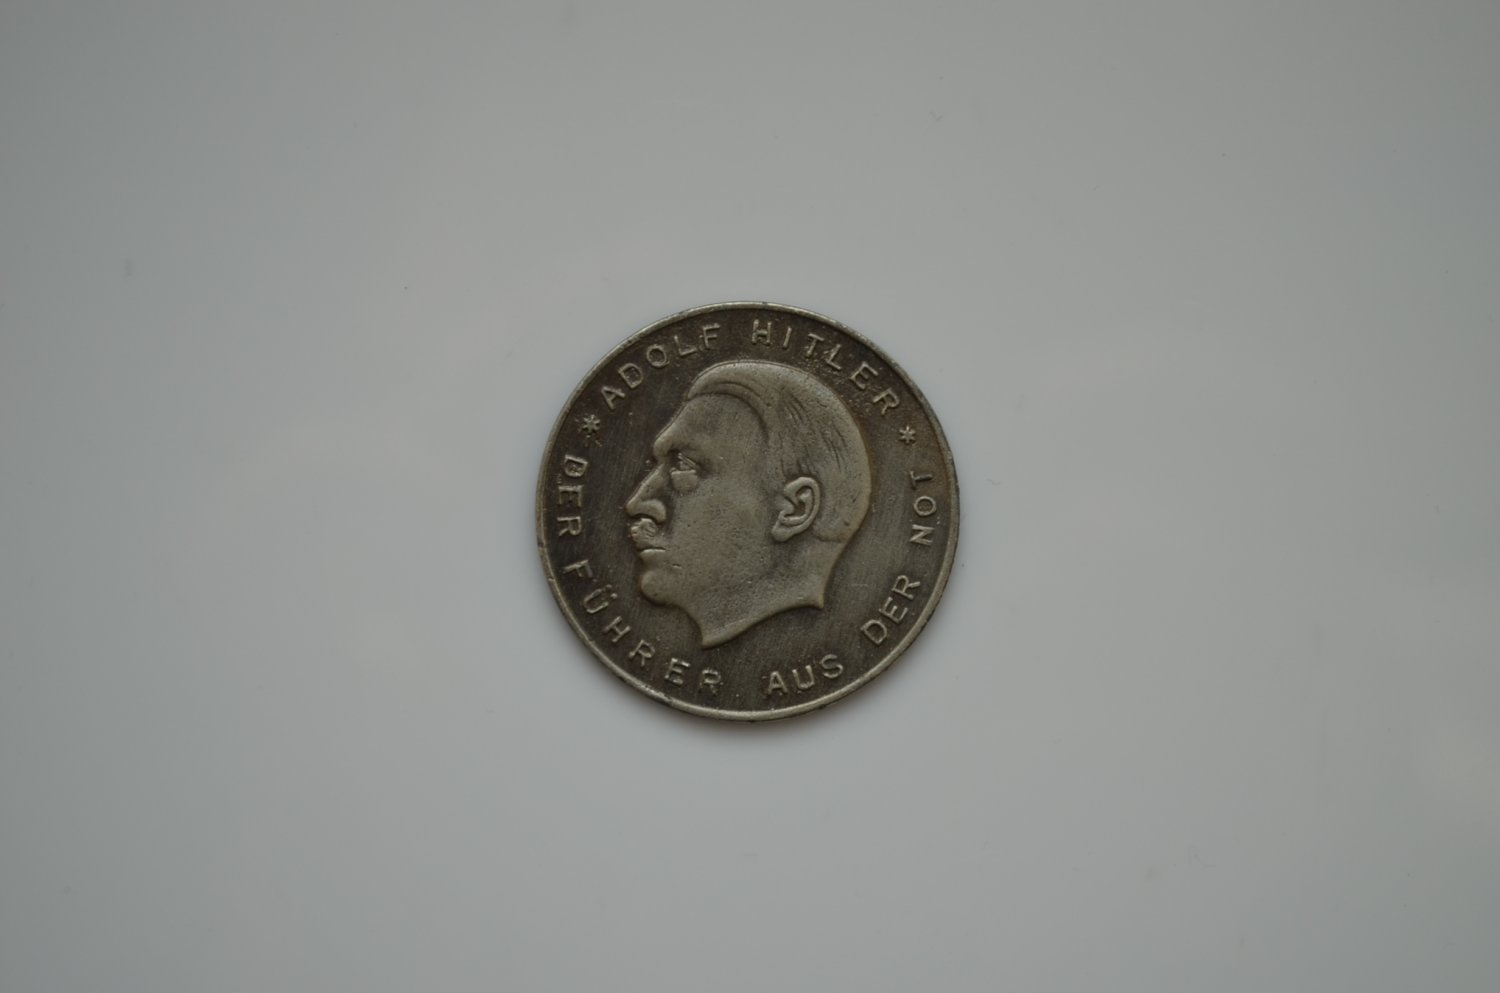 WWII GERMAN MEDAL TOKEN ADOLF HITLER NSDAP 1930